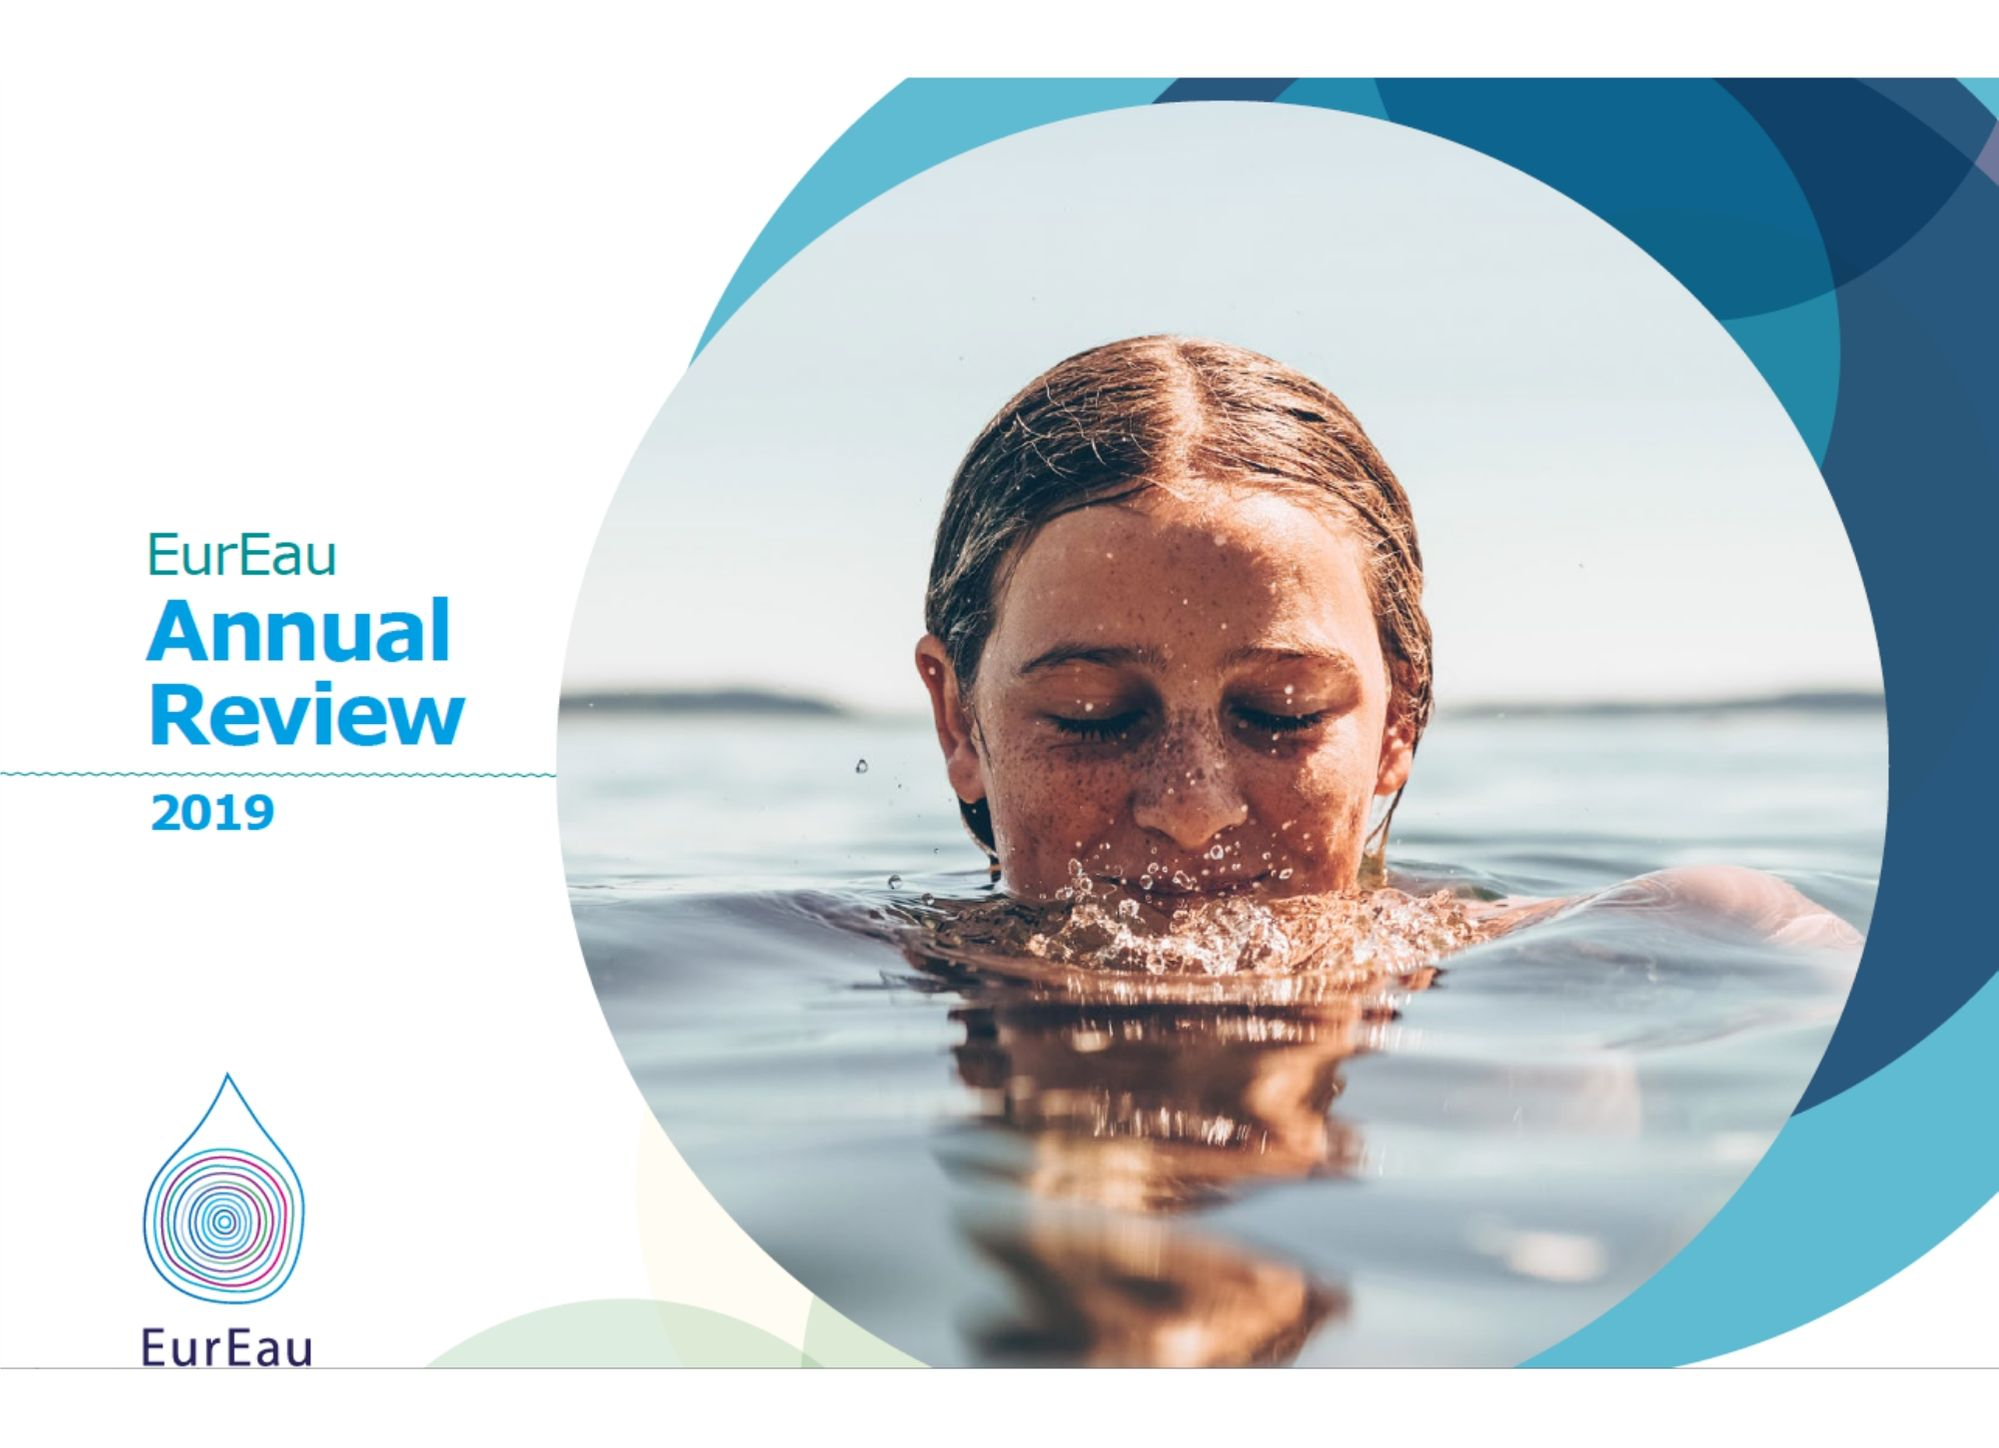 EurEau Annual Review 2019